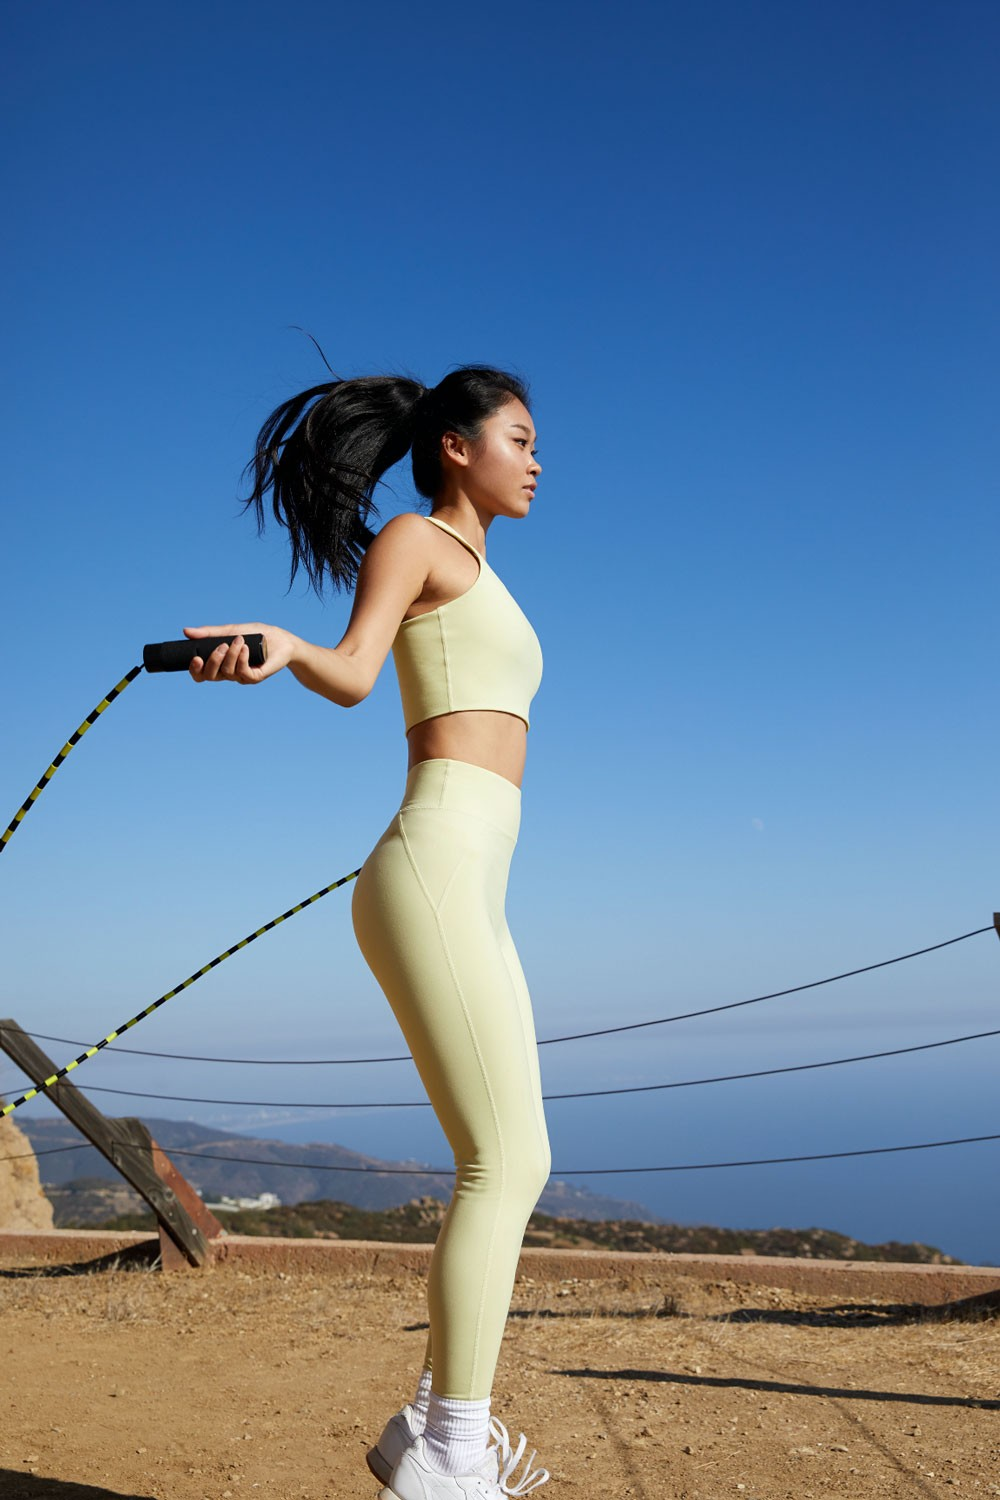 pacsun activewear fitness wellness collection announces new category